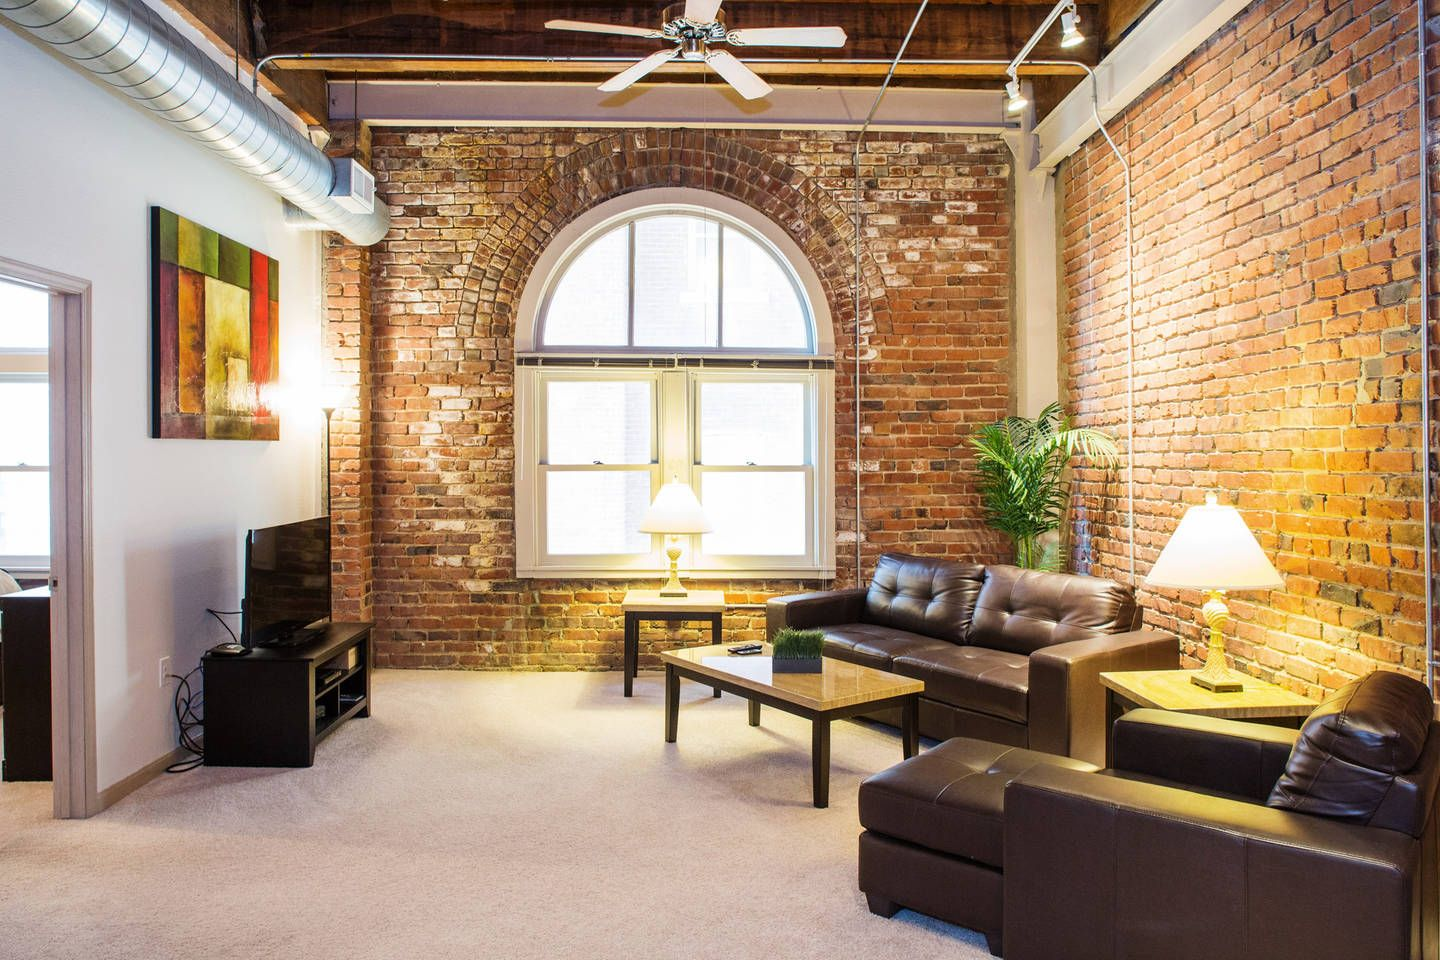 Execustay At Old Market Lofts 1 Br In Omaha Furnished Apartment Home Condo Rental